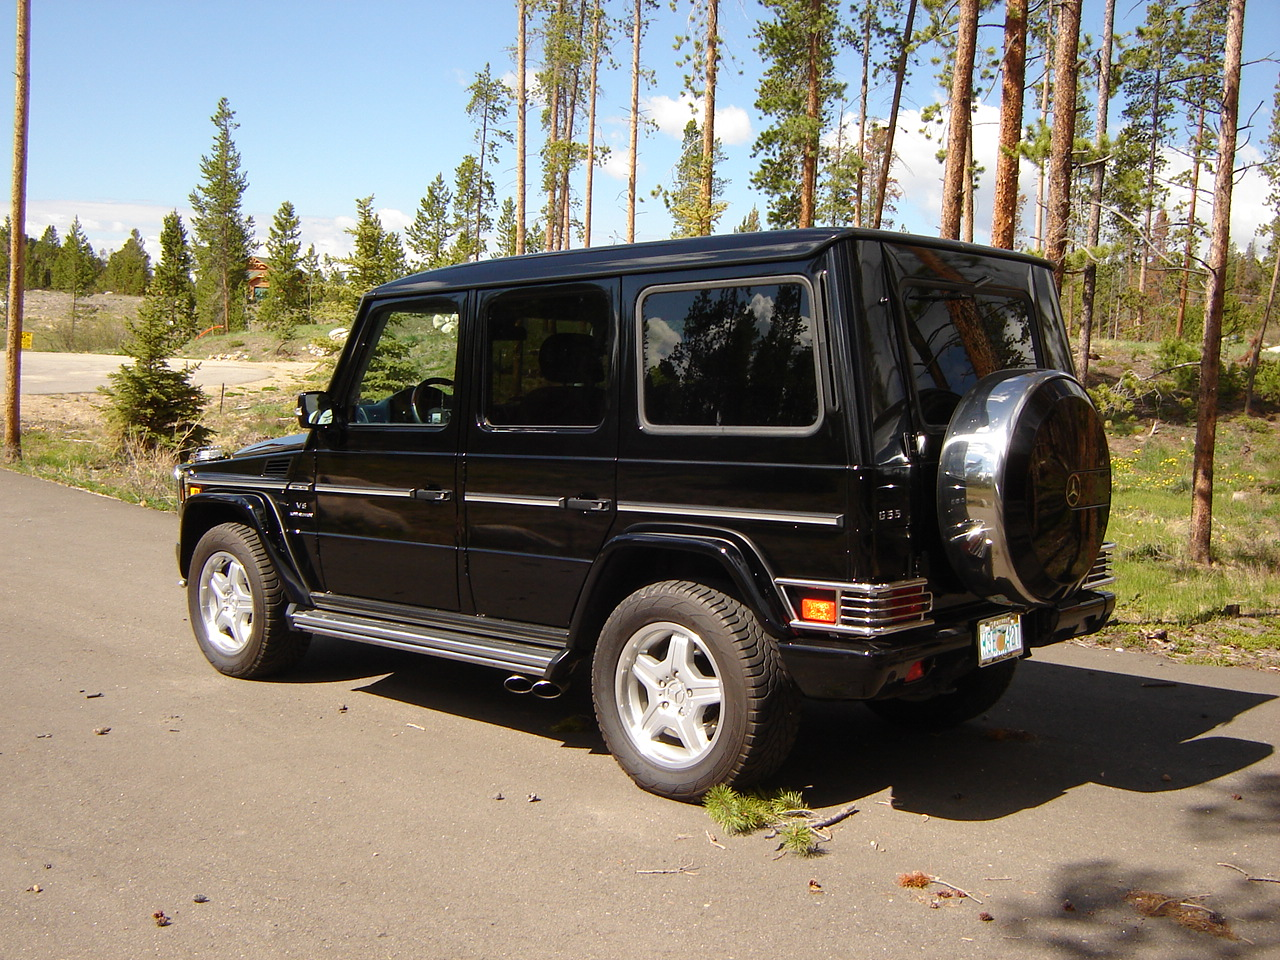 2005 mercedes benz g class pictures cargurus for 2005 mercedes benz g55 amg